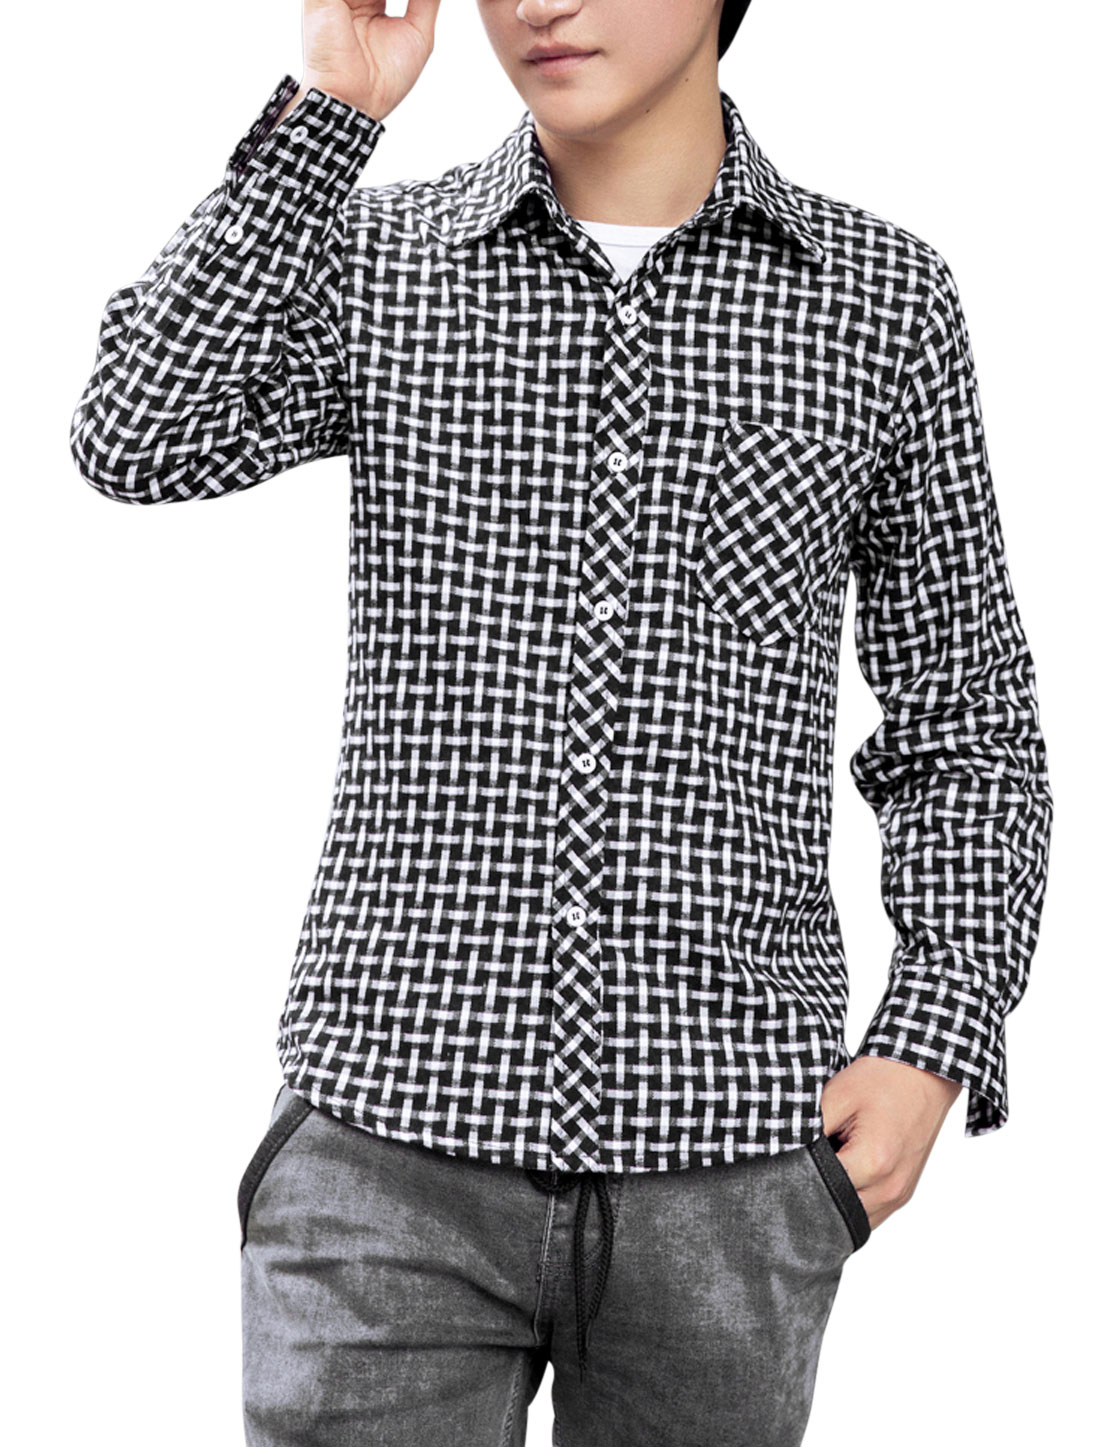 Men One Pocket Chest Plaids Pattern Slim Casual Shirt White Black M